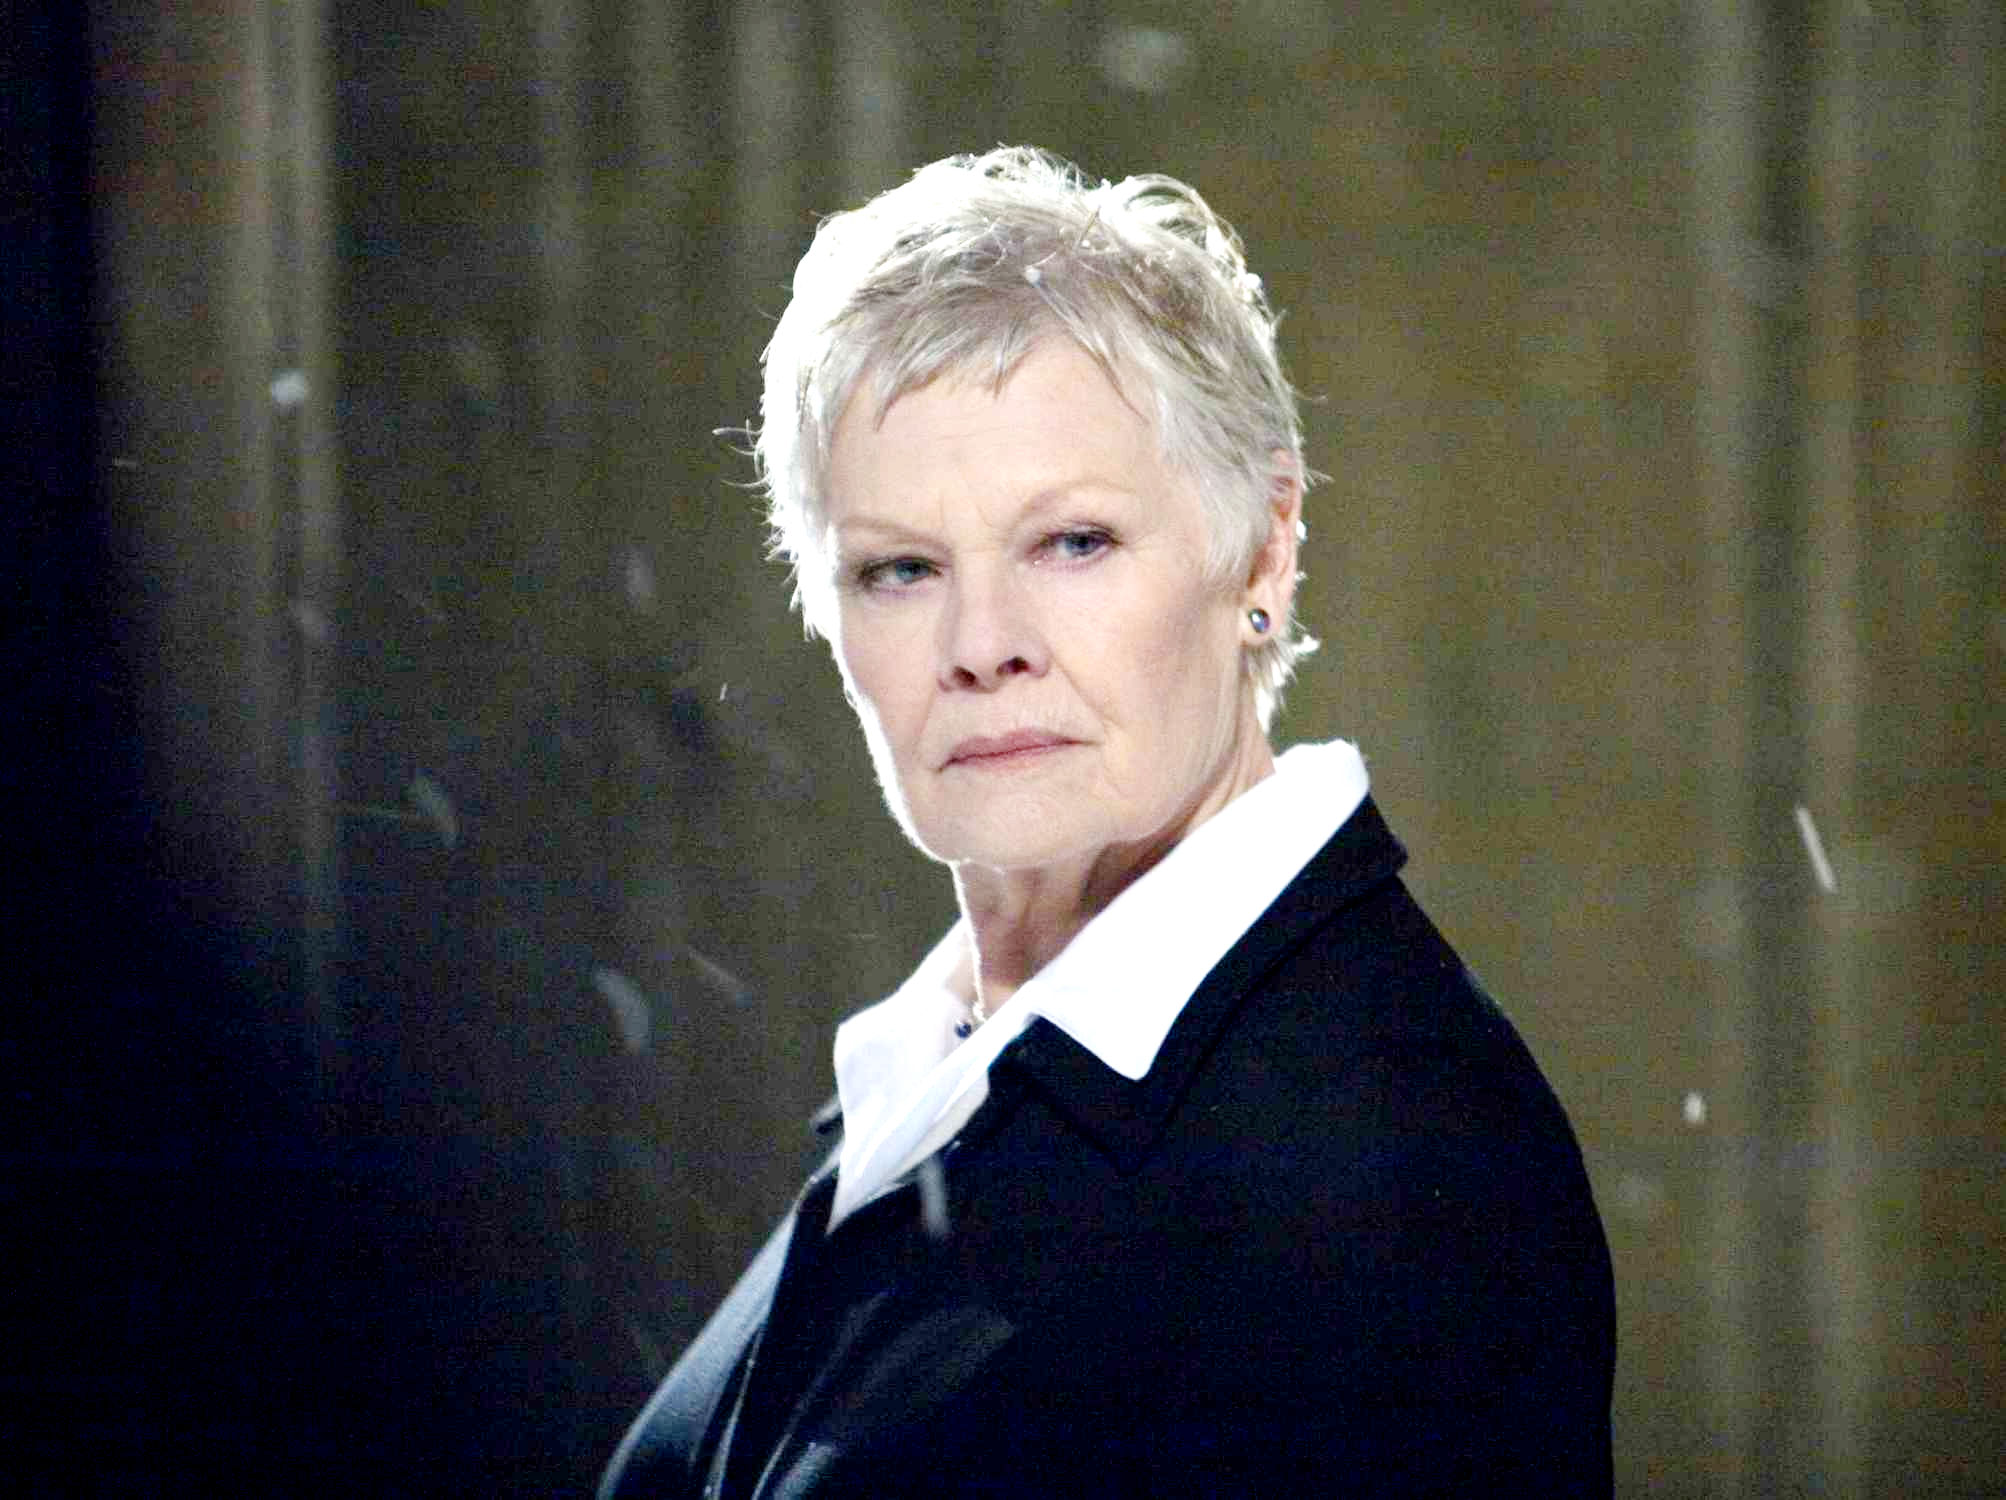 Judi Dench   Photo Set Image Wide Top 2006x1500